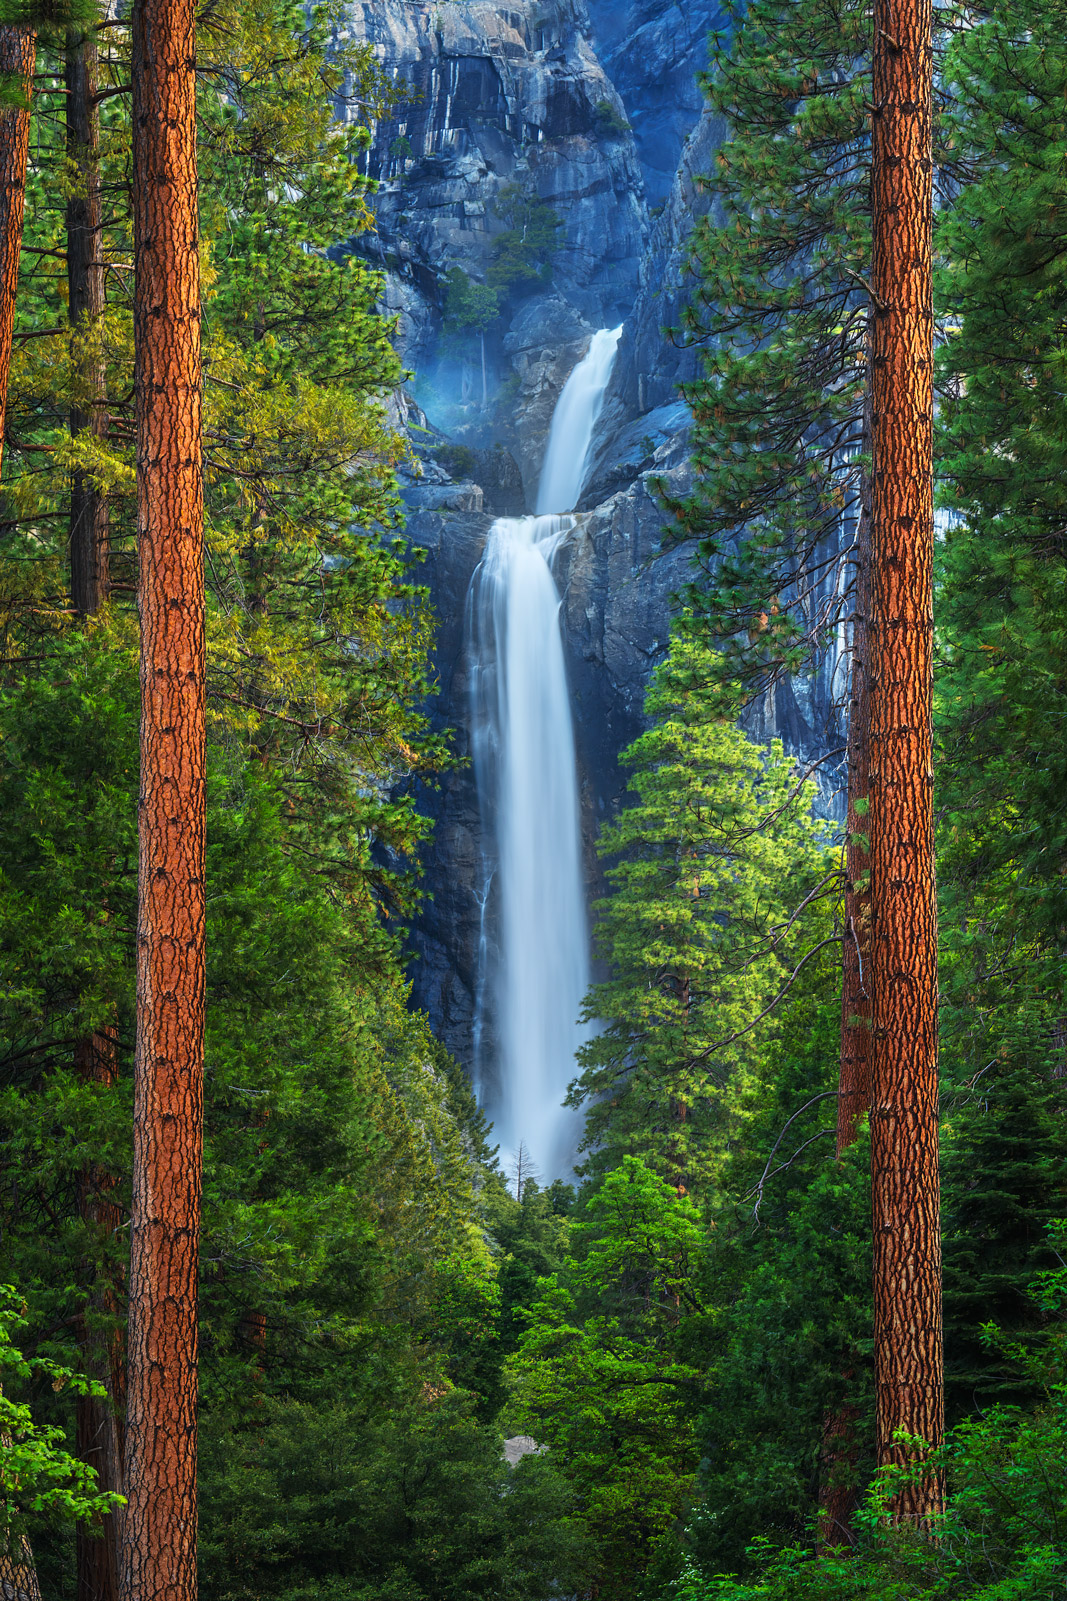 A Limited Edition, Fine Art photograph looking at Yosemite Falls through two parallel Ponderosa Pine Trees at Yosemite National...